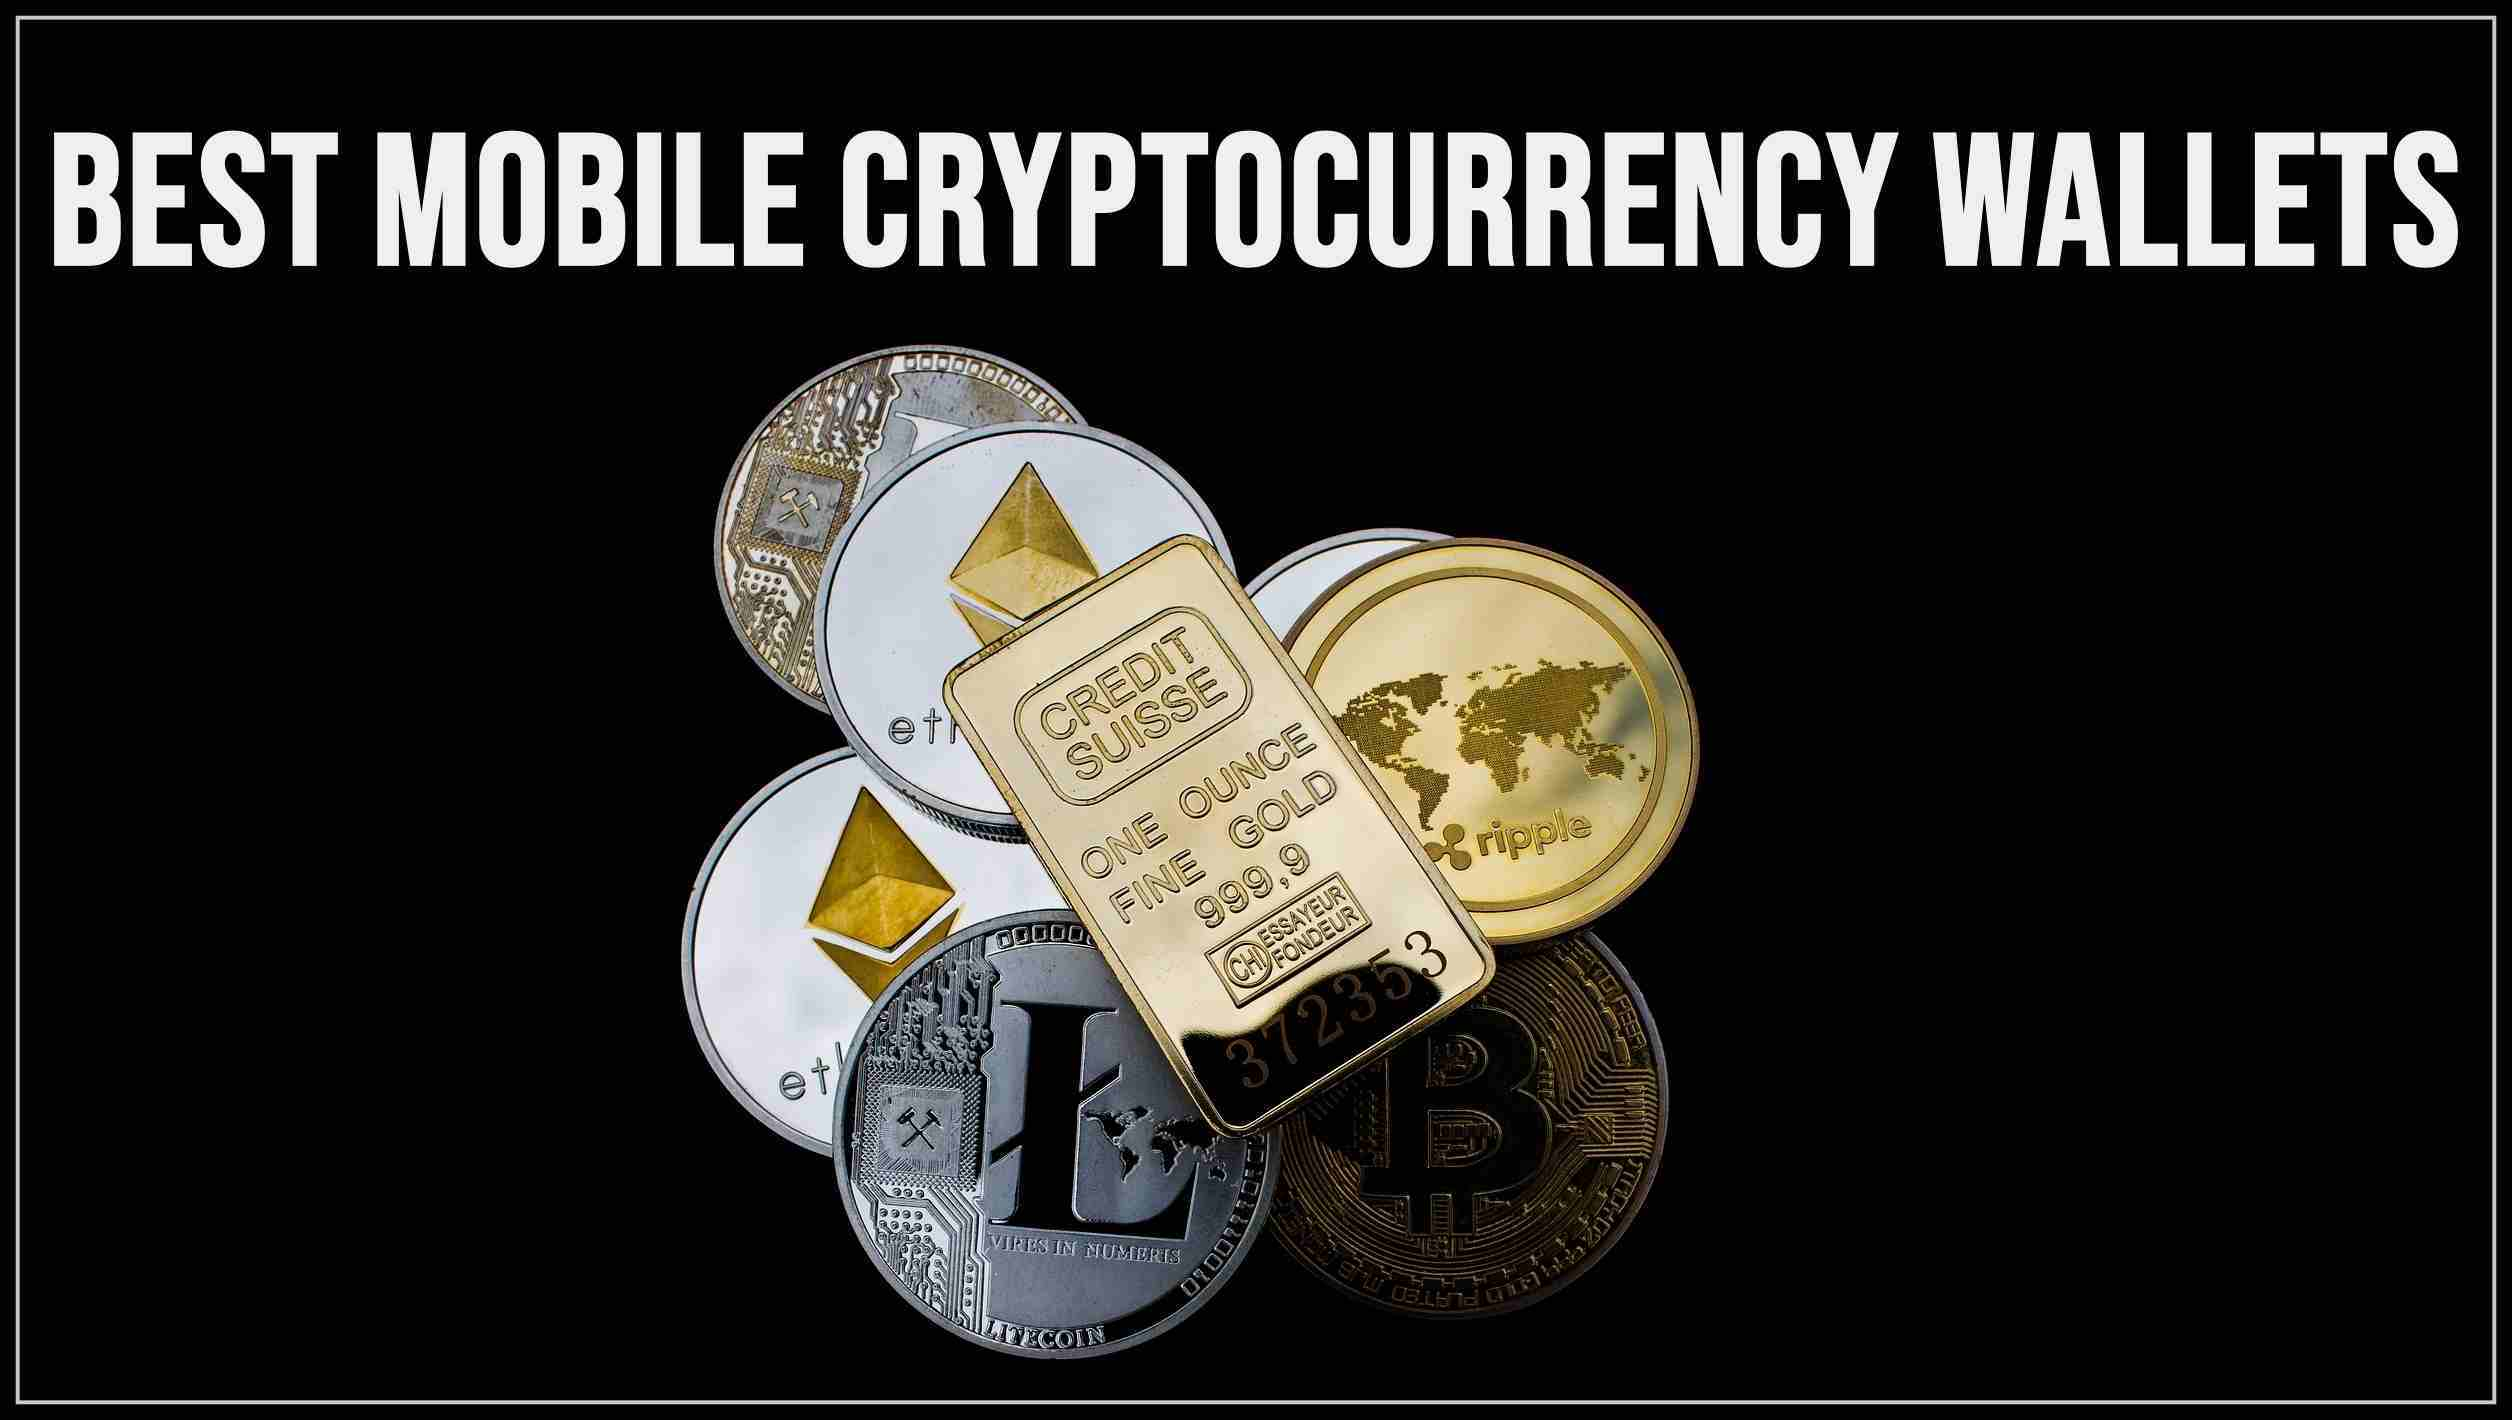 Best Mobile Cryptocurrency Wallets